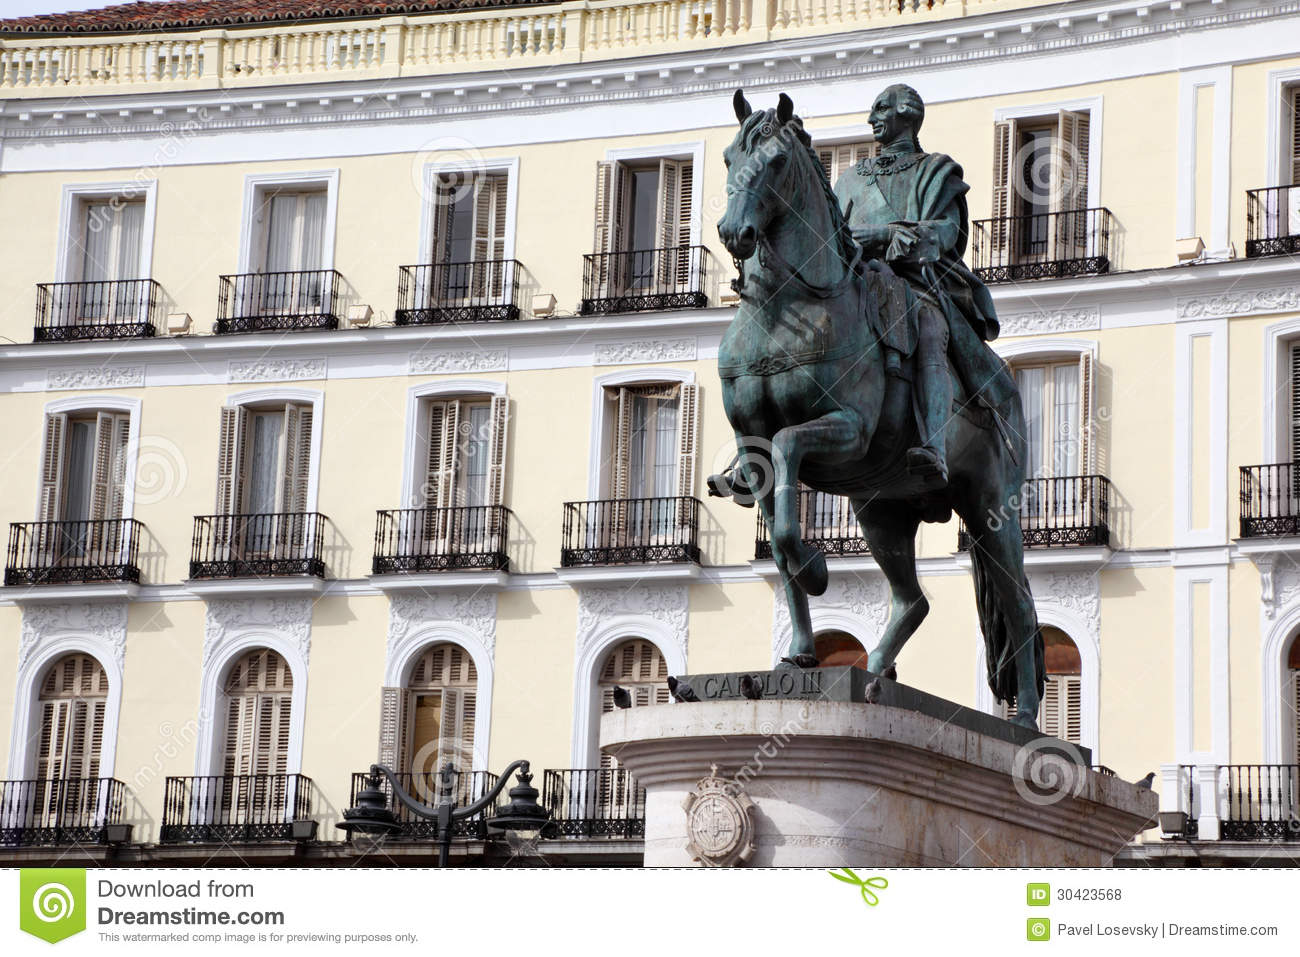 Puerta del sol carlos iii monument in madrid royalty free for Puerta del sol web